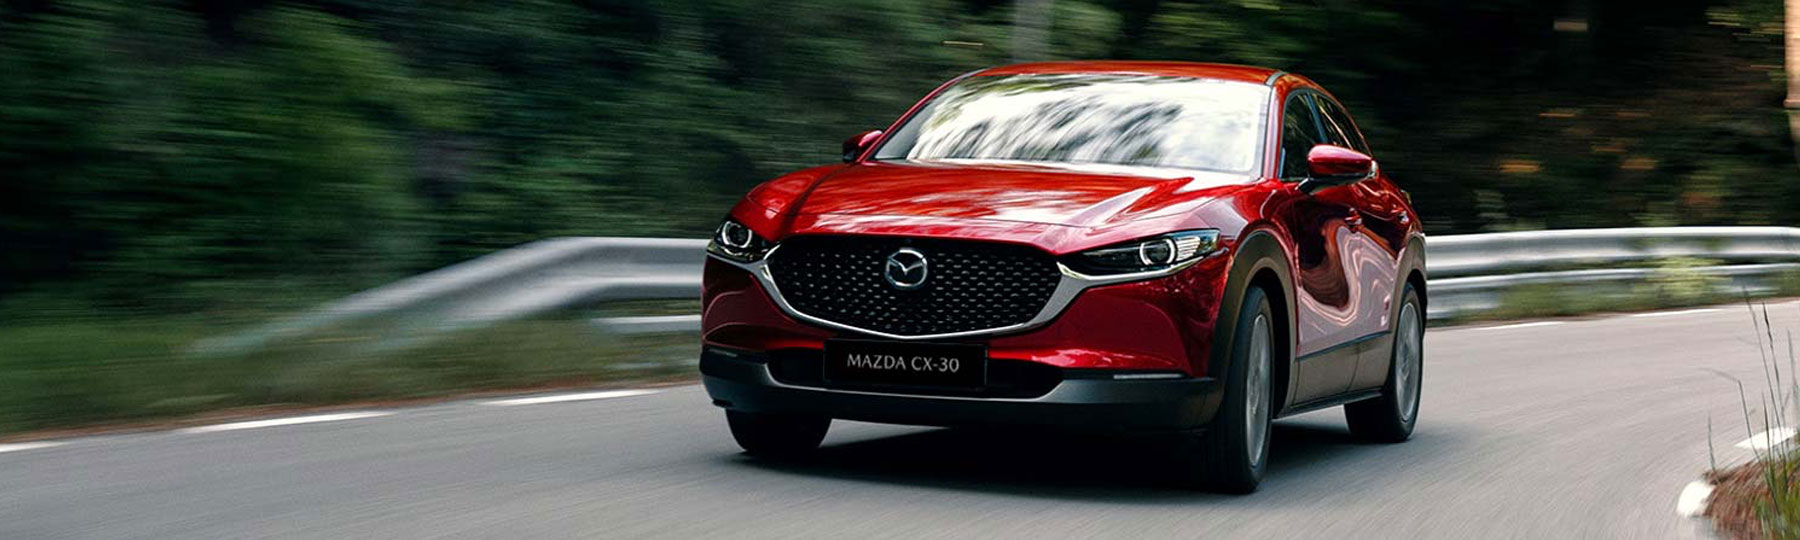 All-New Mazda CX-30 New Car Offer